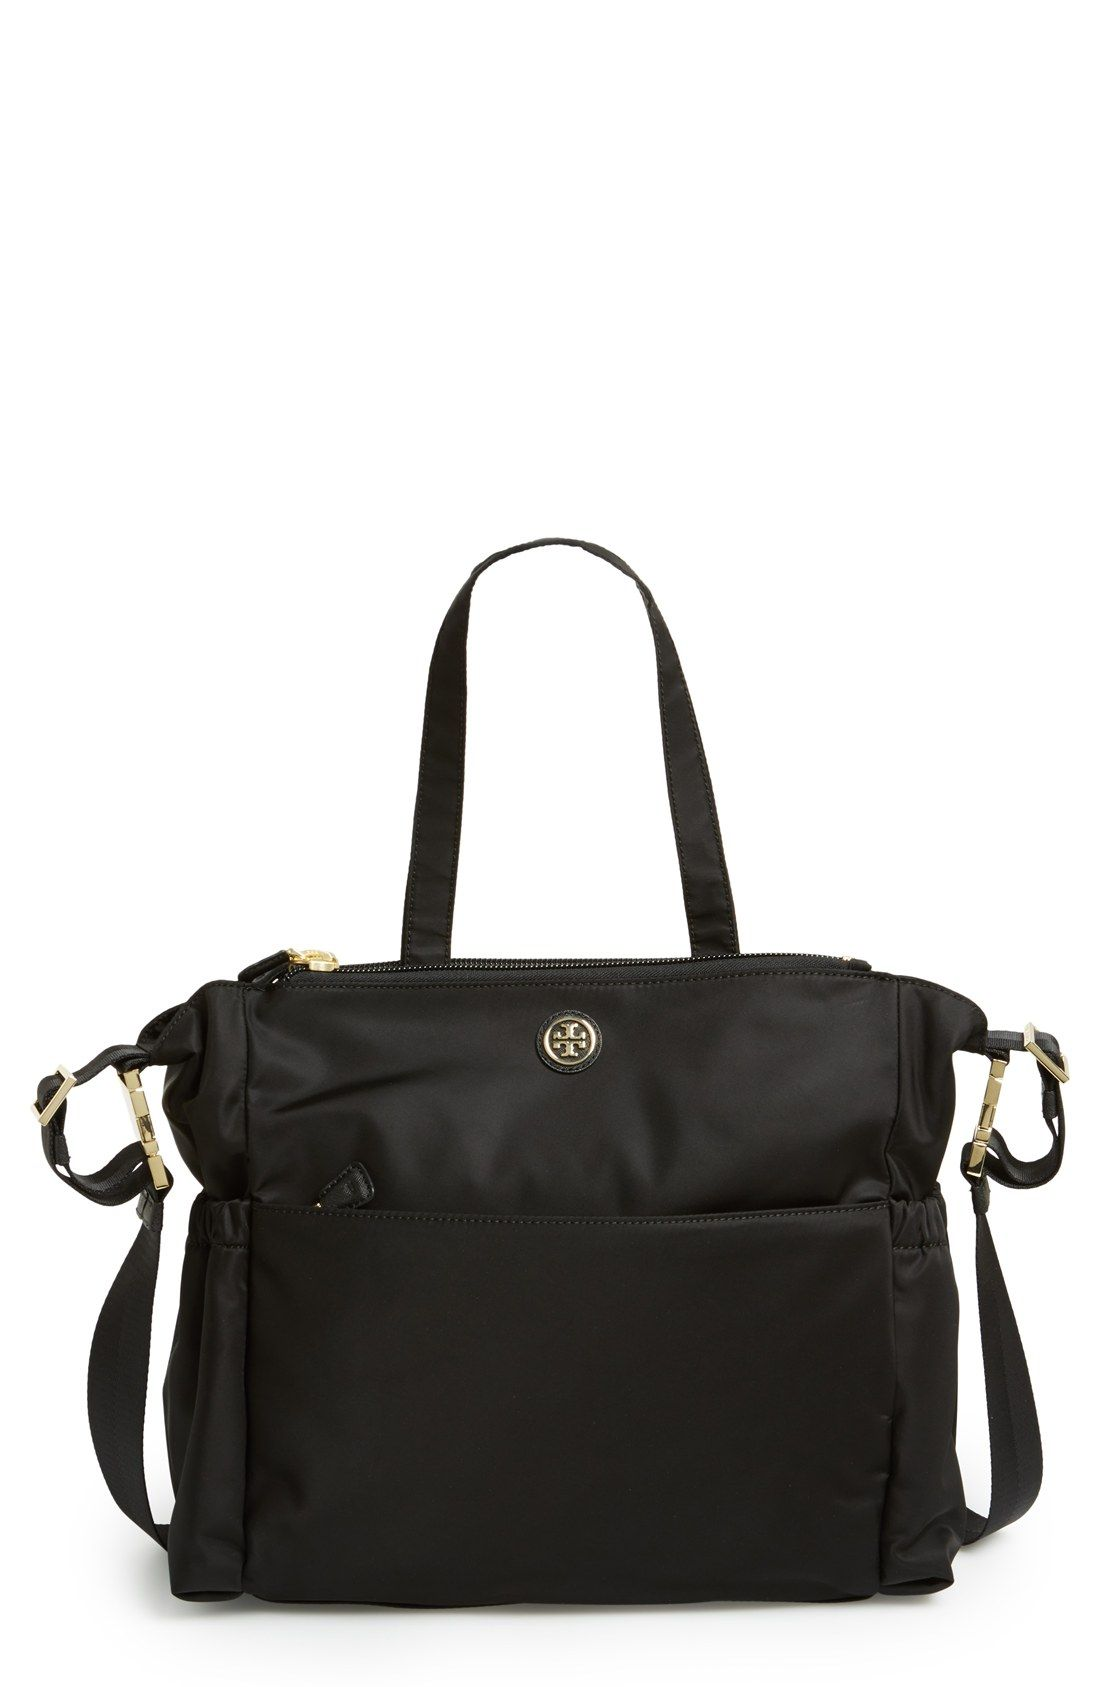 Tory Burch Nylon Baby Bag